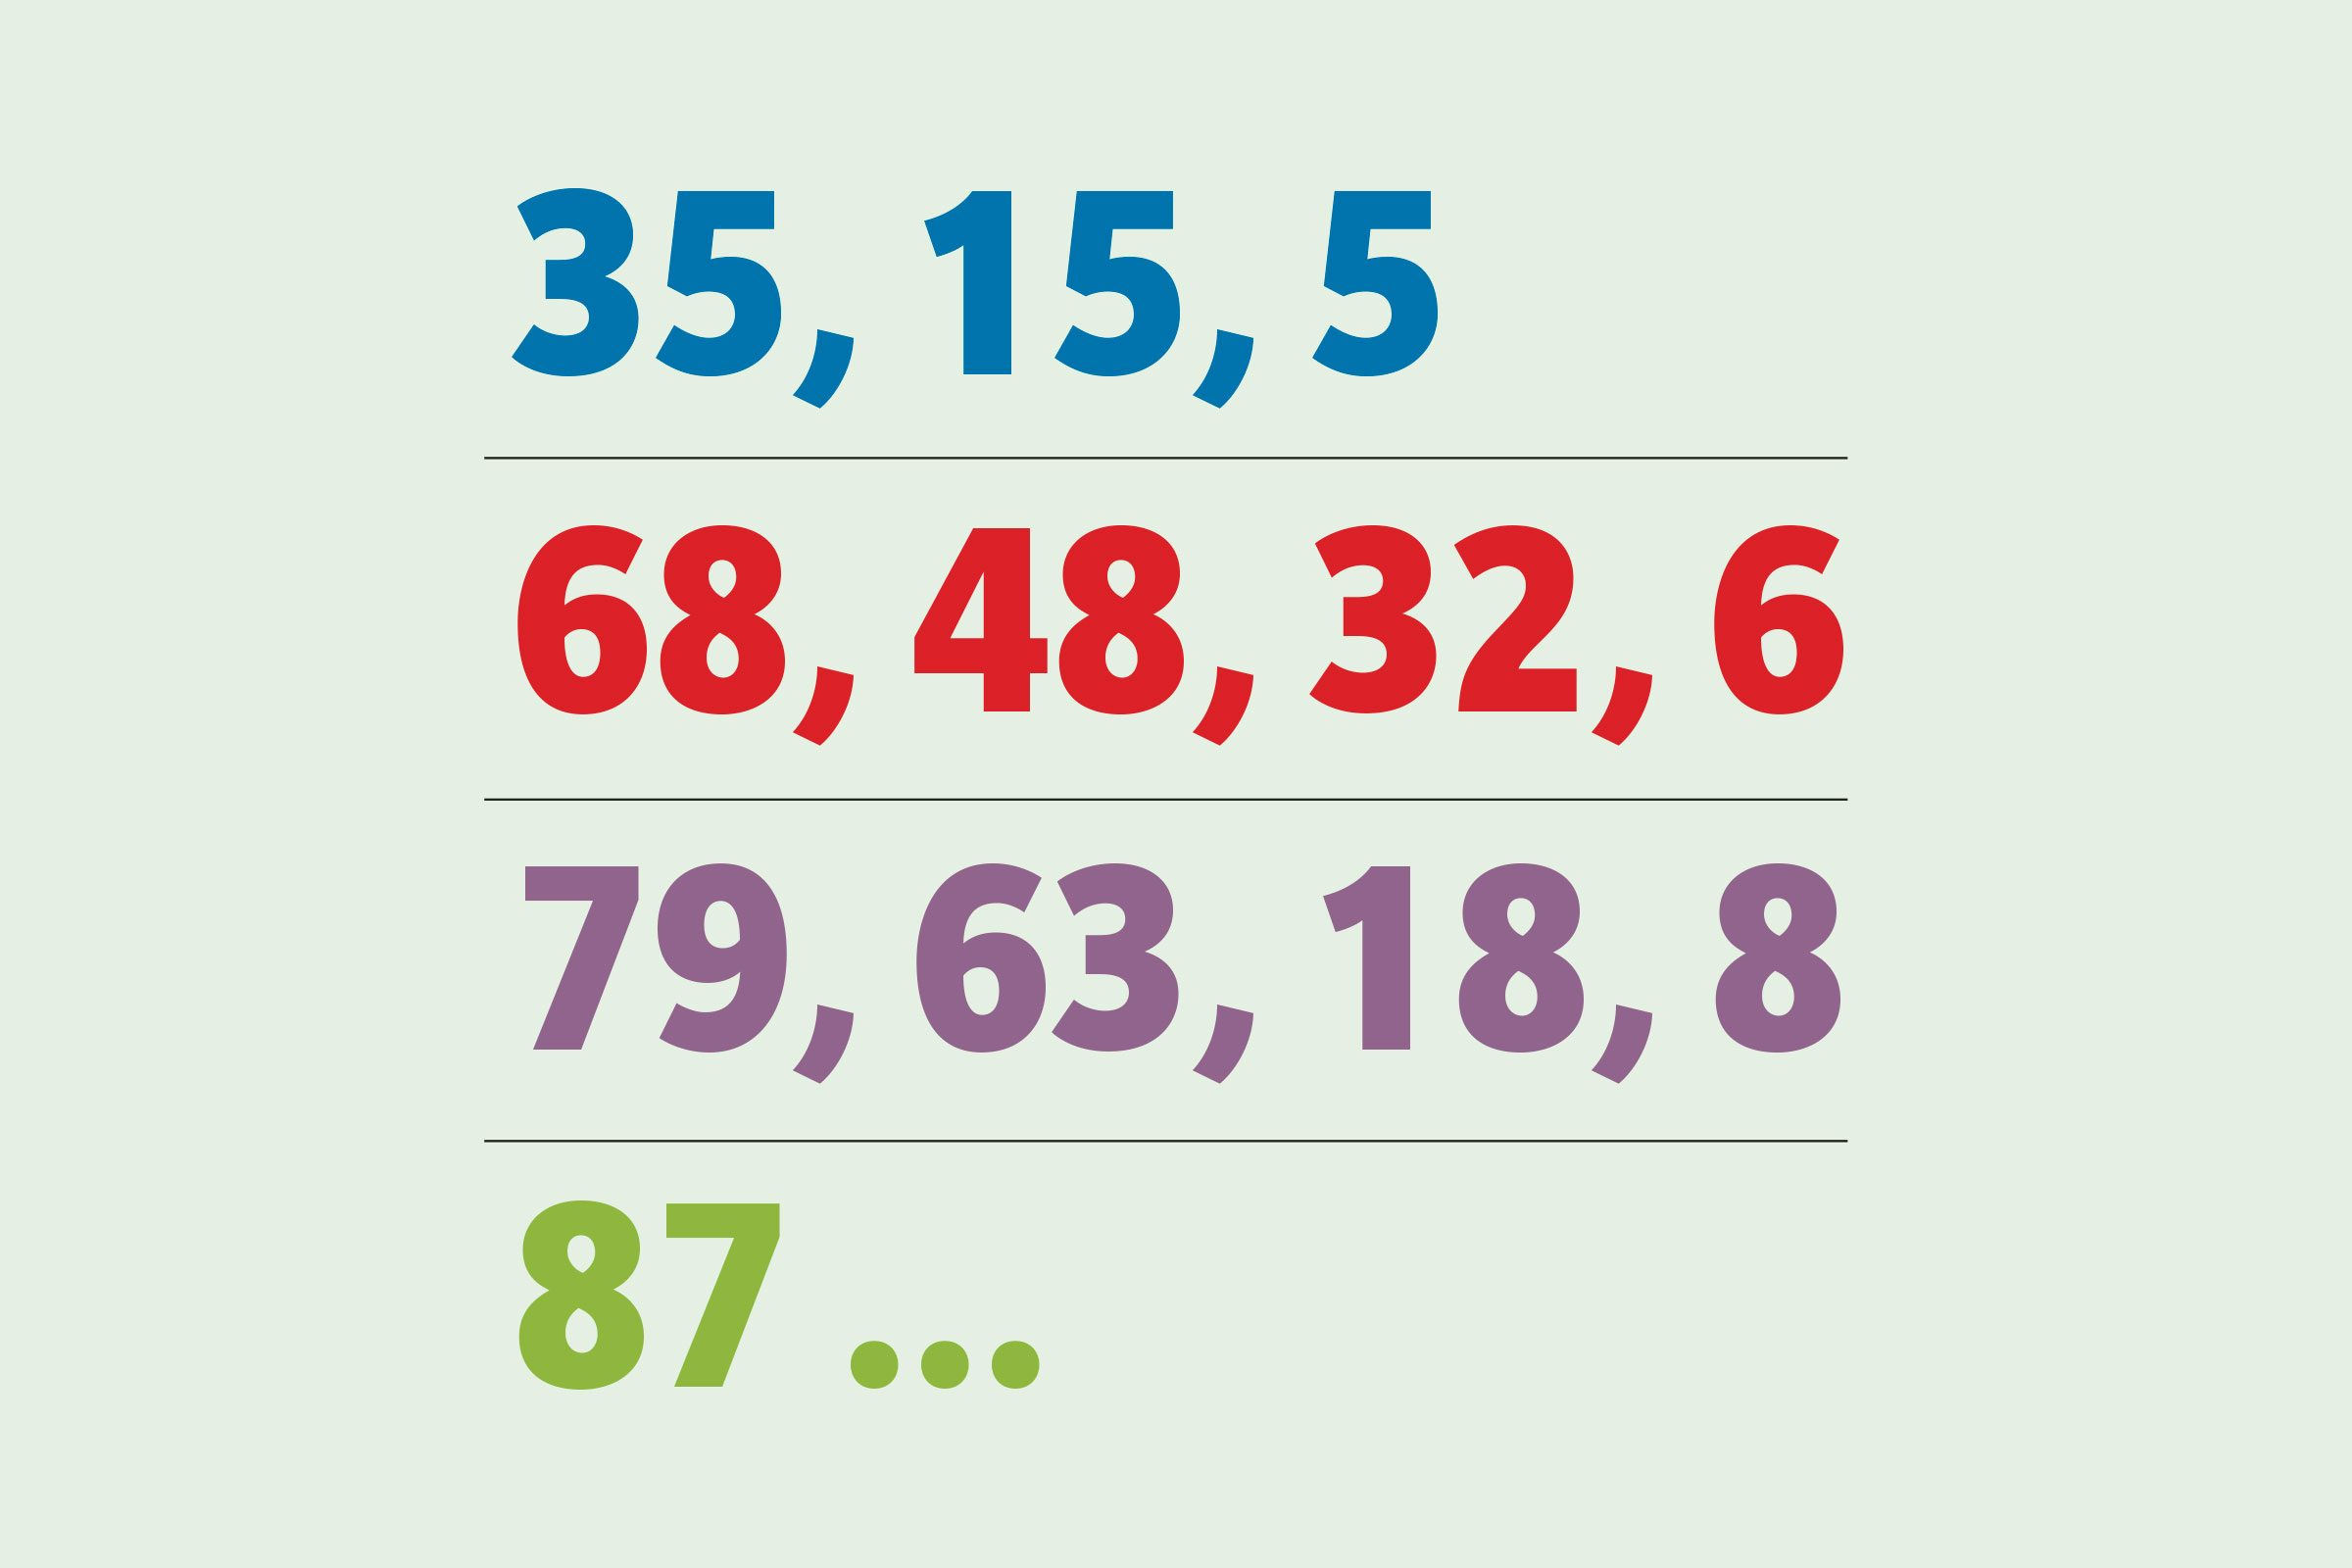 expand and conquer brain game. First row: 35, 15, 5. Second row: 68, 48, 32, 6. Third row: 79, 63, 18, 8. Fourth row: 87...